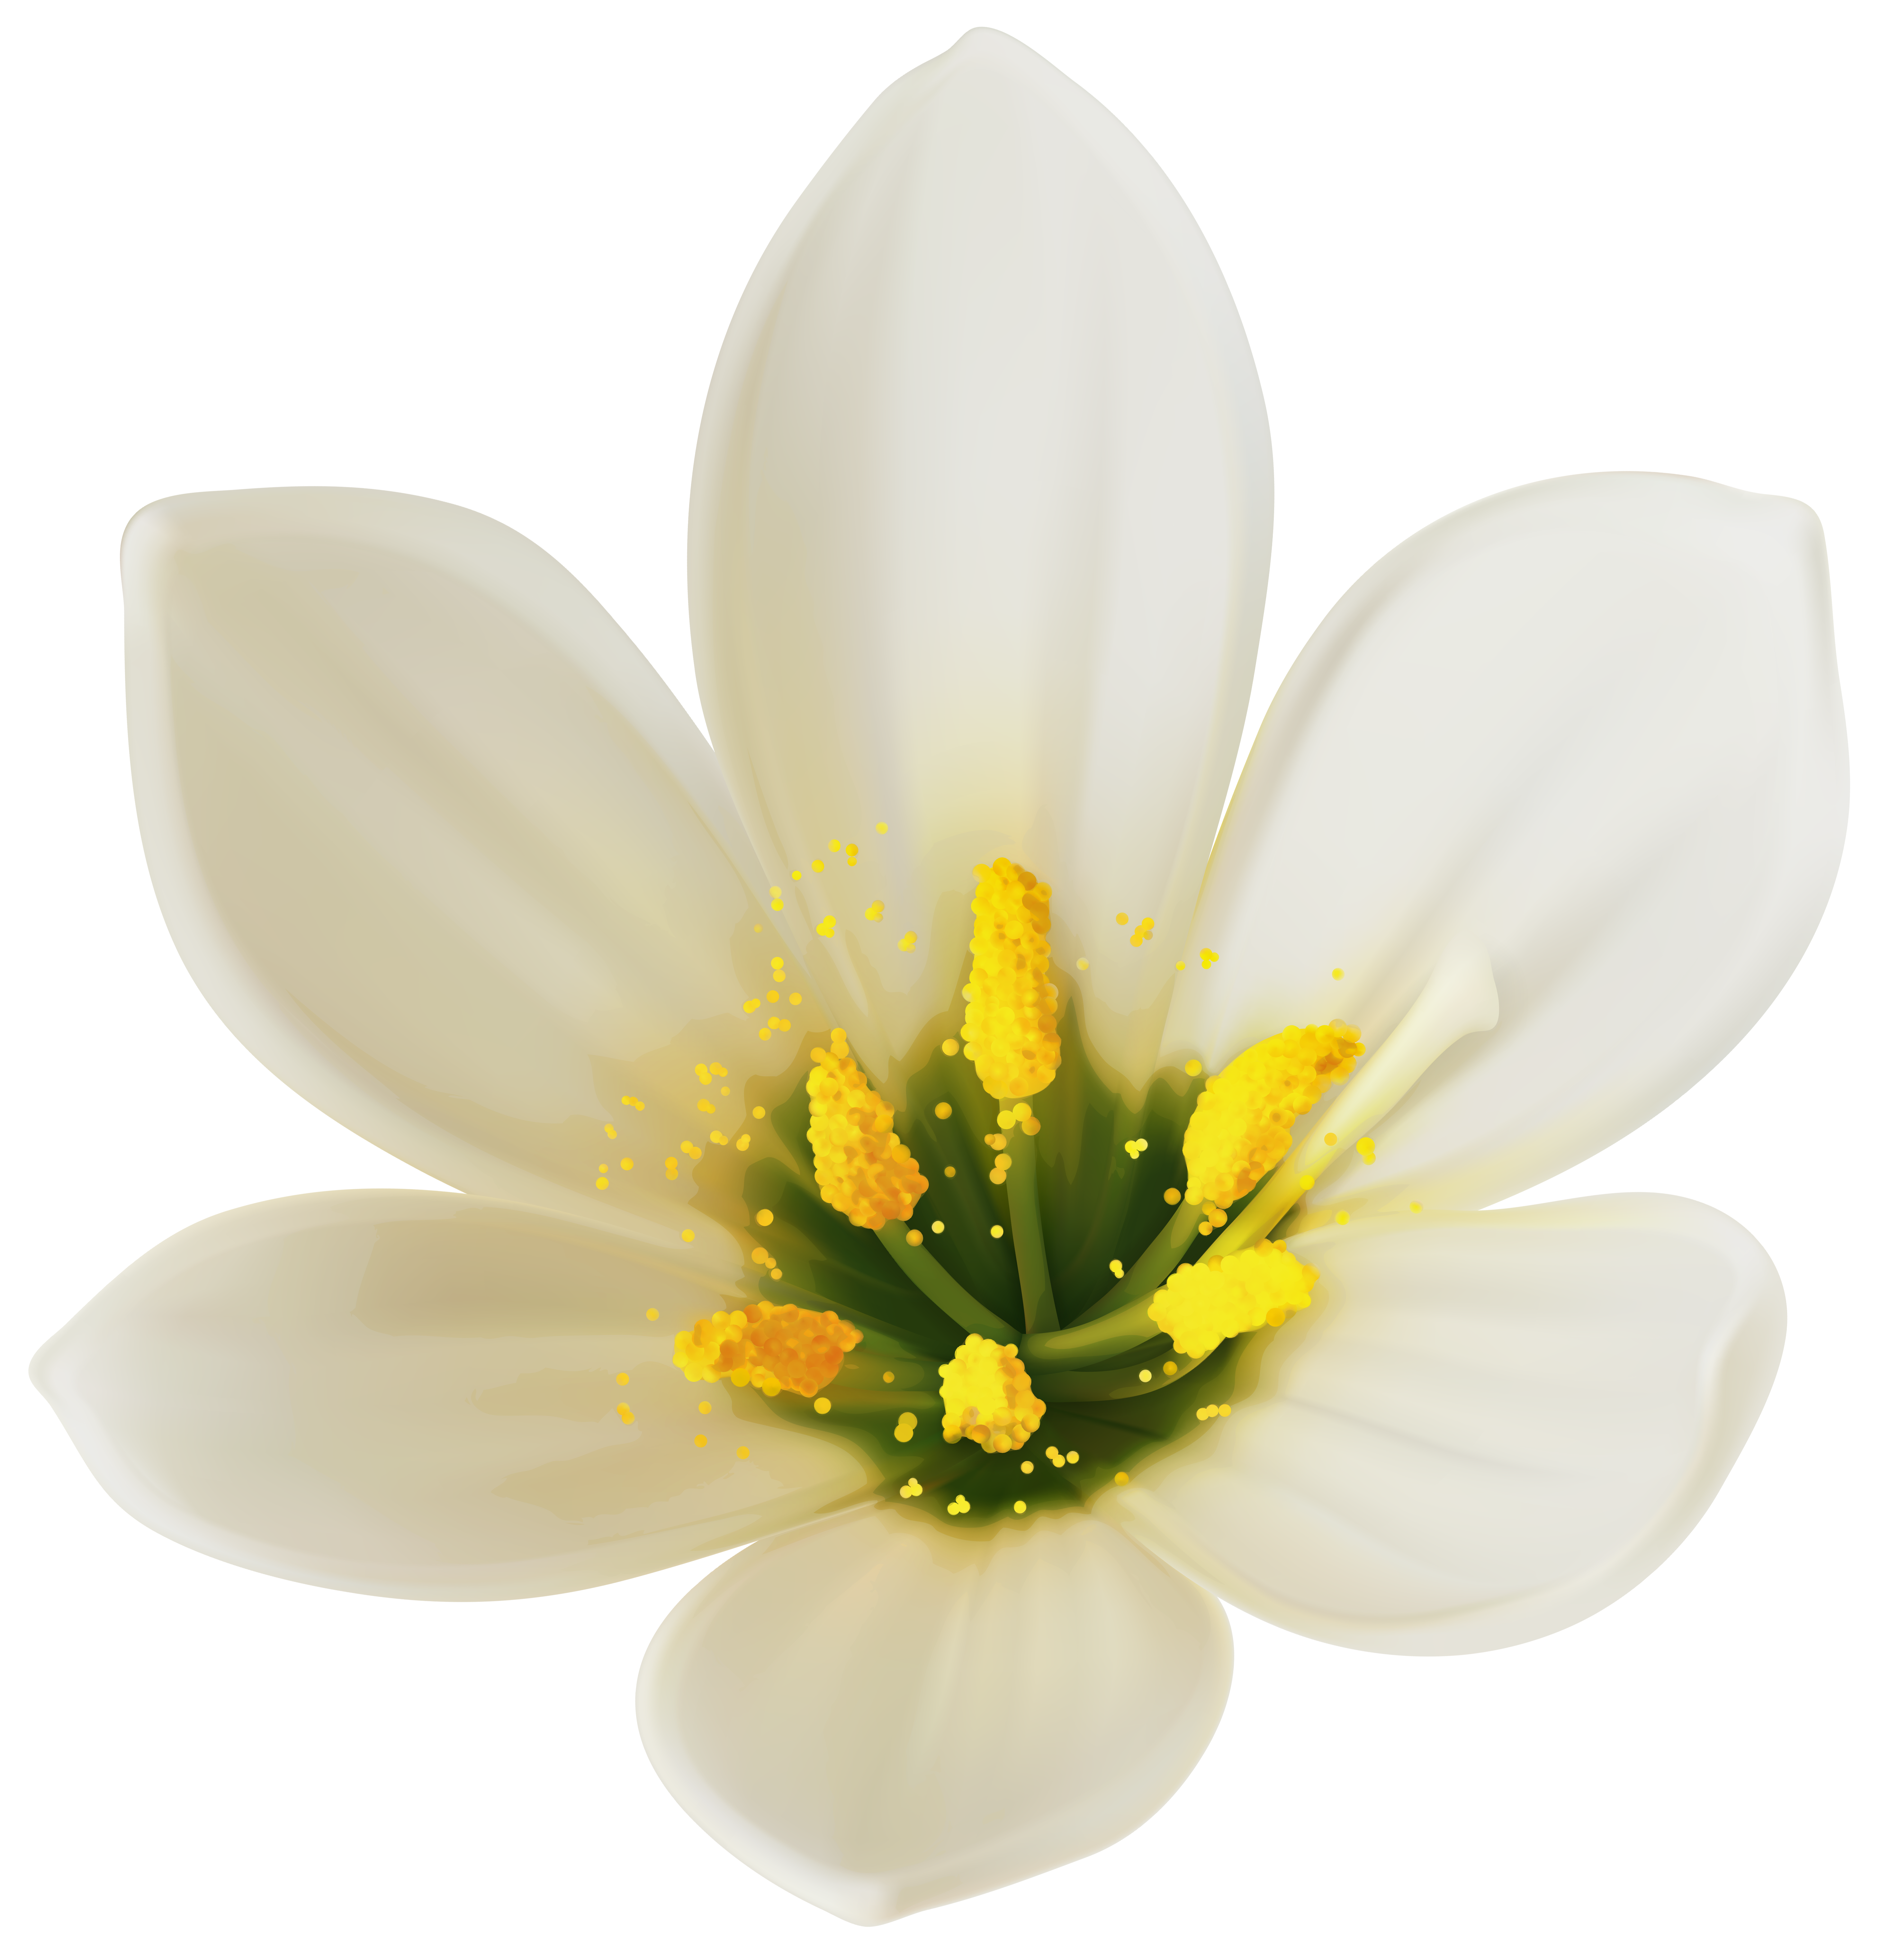 White flower clipart png. Image gallery yopriceville high